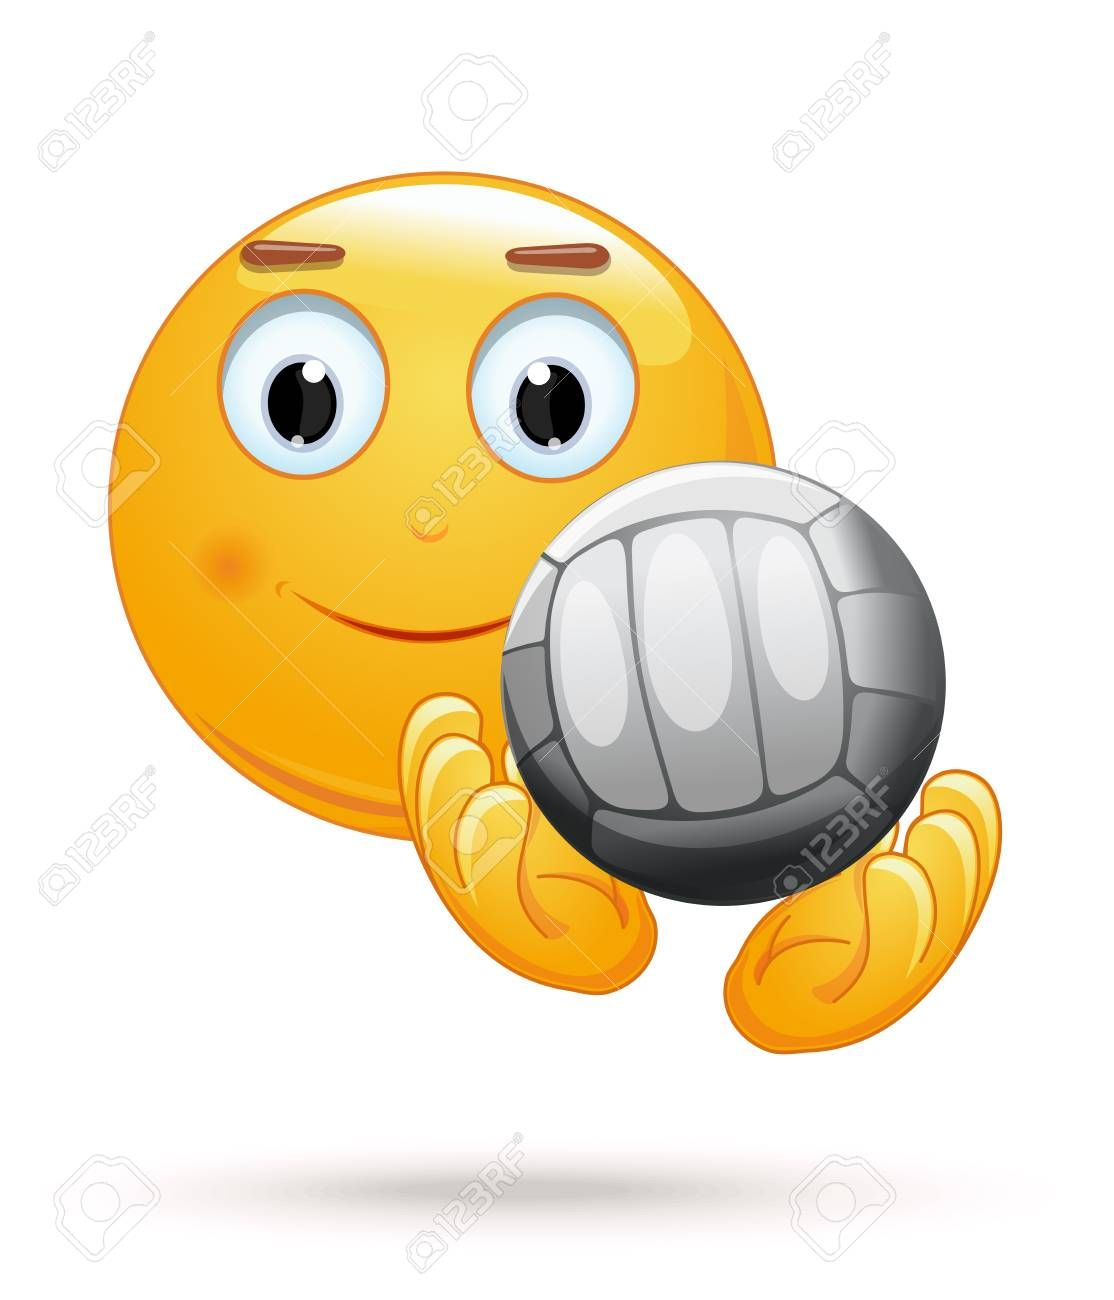 Cheerful Smiley Catches The Ball Emoticon Face Playing Volleyball Emoji With Ball For Playing Volleyball Vector Illustration In 2020 Emoticon Smiley Emoticon Faces